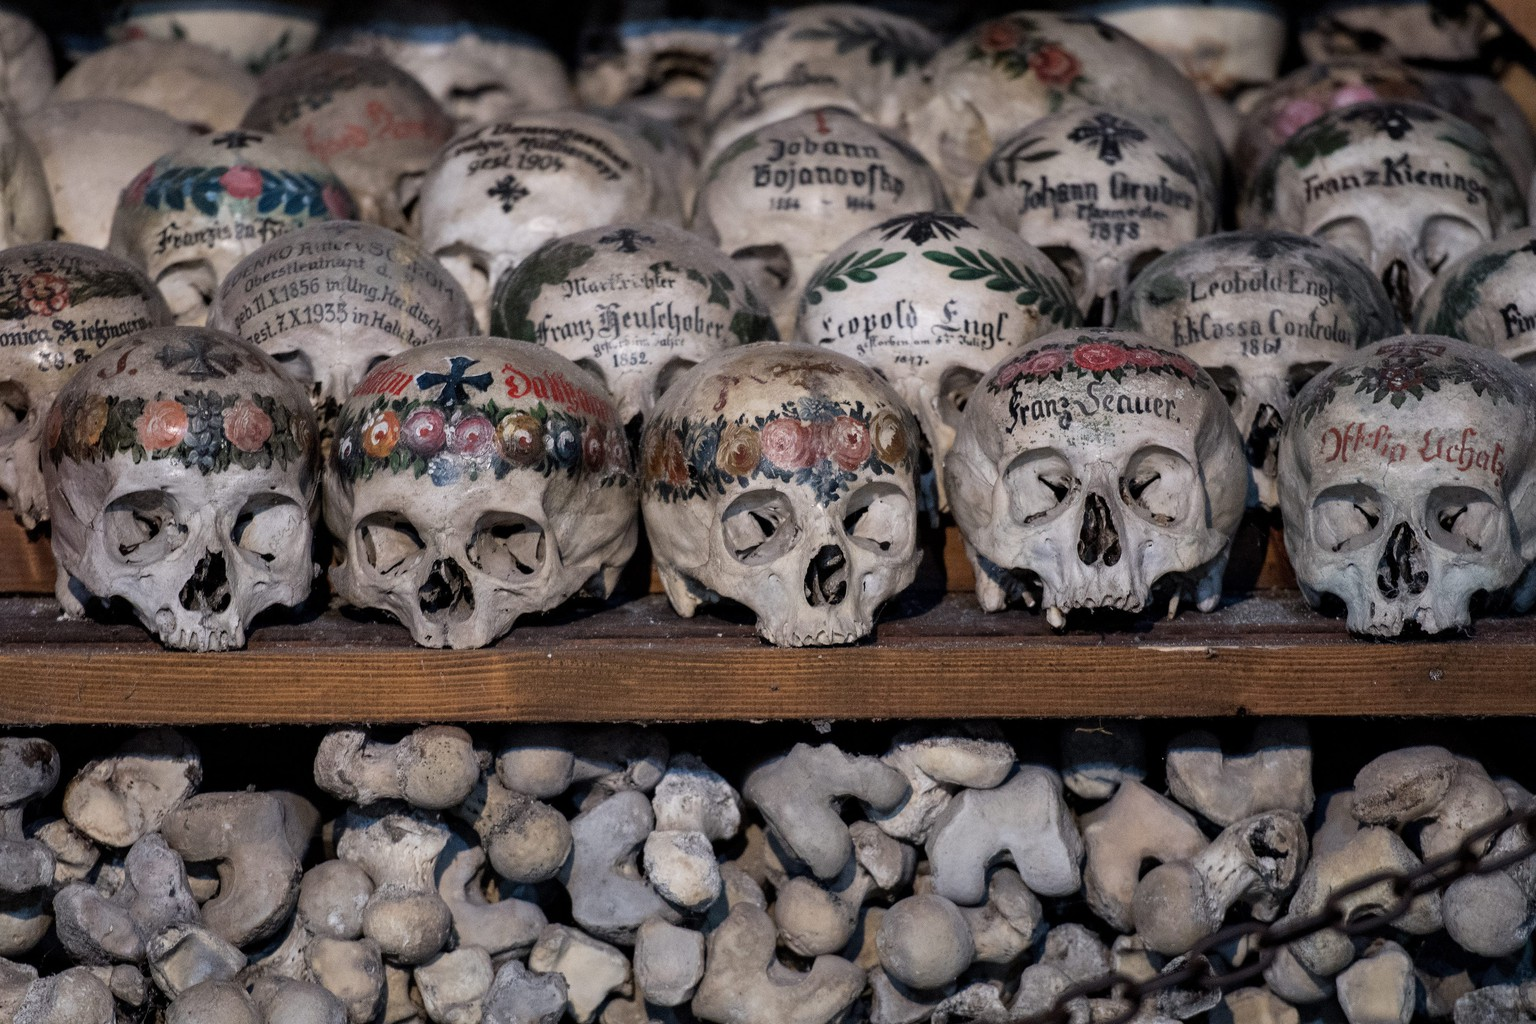 epa05574823 Human skulls and bones at the Bone House (Beinhaus) in the Austrian UNESCO world heritage village of Hallstatt, some 300 kilometers southwest of Vienna, Austria, 07 October 2016. The Bone House comprises up to 1,200 skulls. In 2012, Hallstatt was replicated in China's southern city of Huizhou in Guangdong province for a residential project.  EPA/CHRISTIAN BRUNA